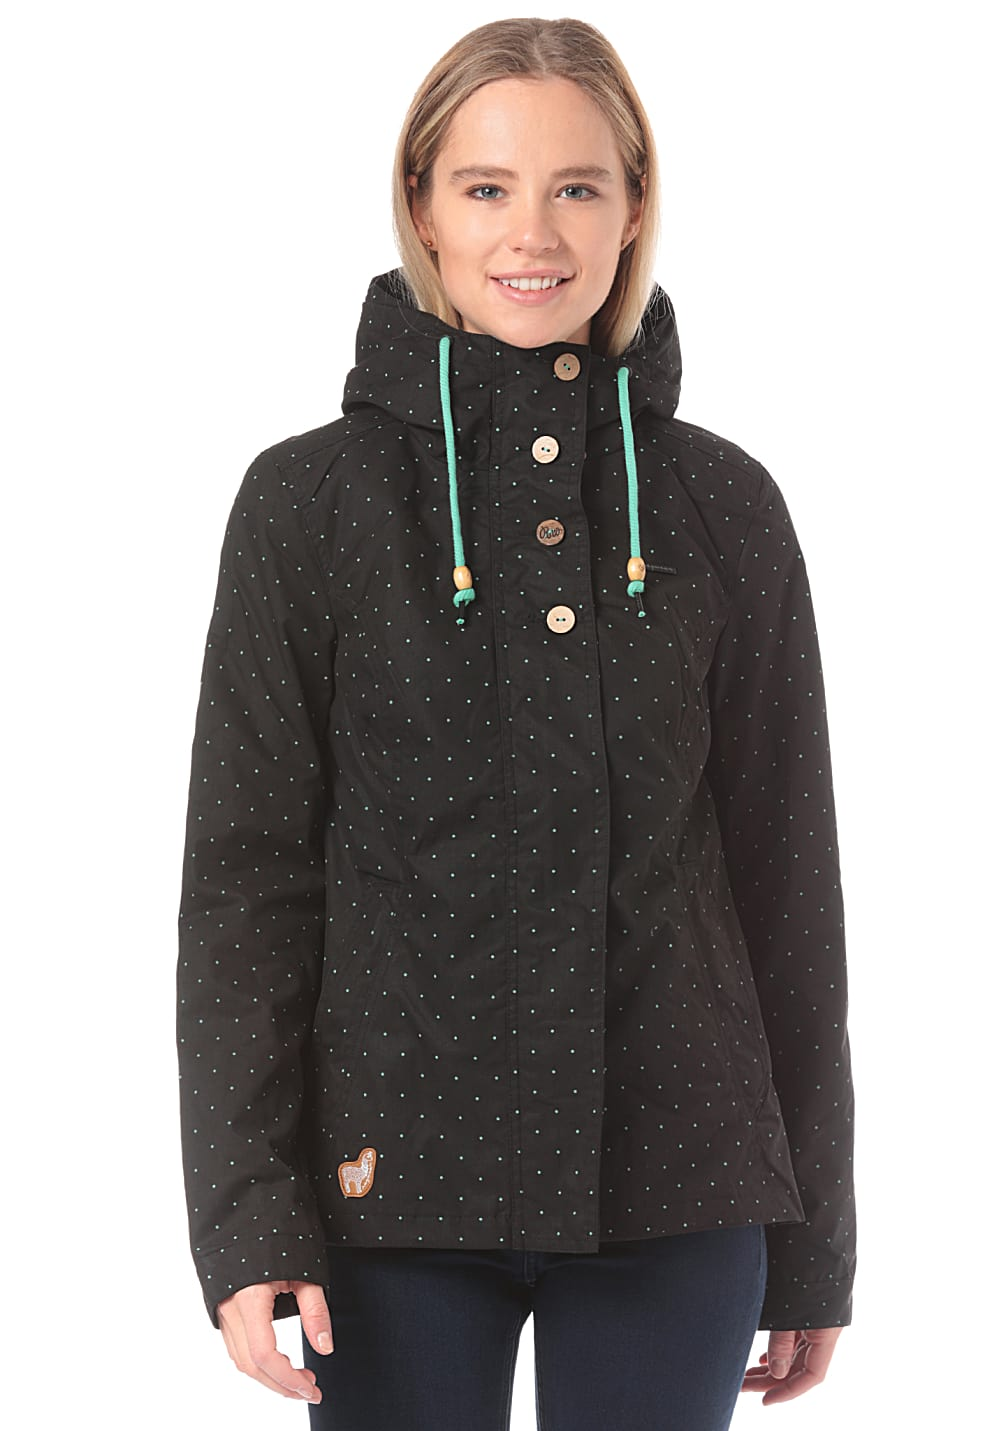 Jacken - ragwear Lynx Dots für Damen Schwarz  - Onlineshop Planet Sports